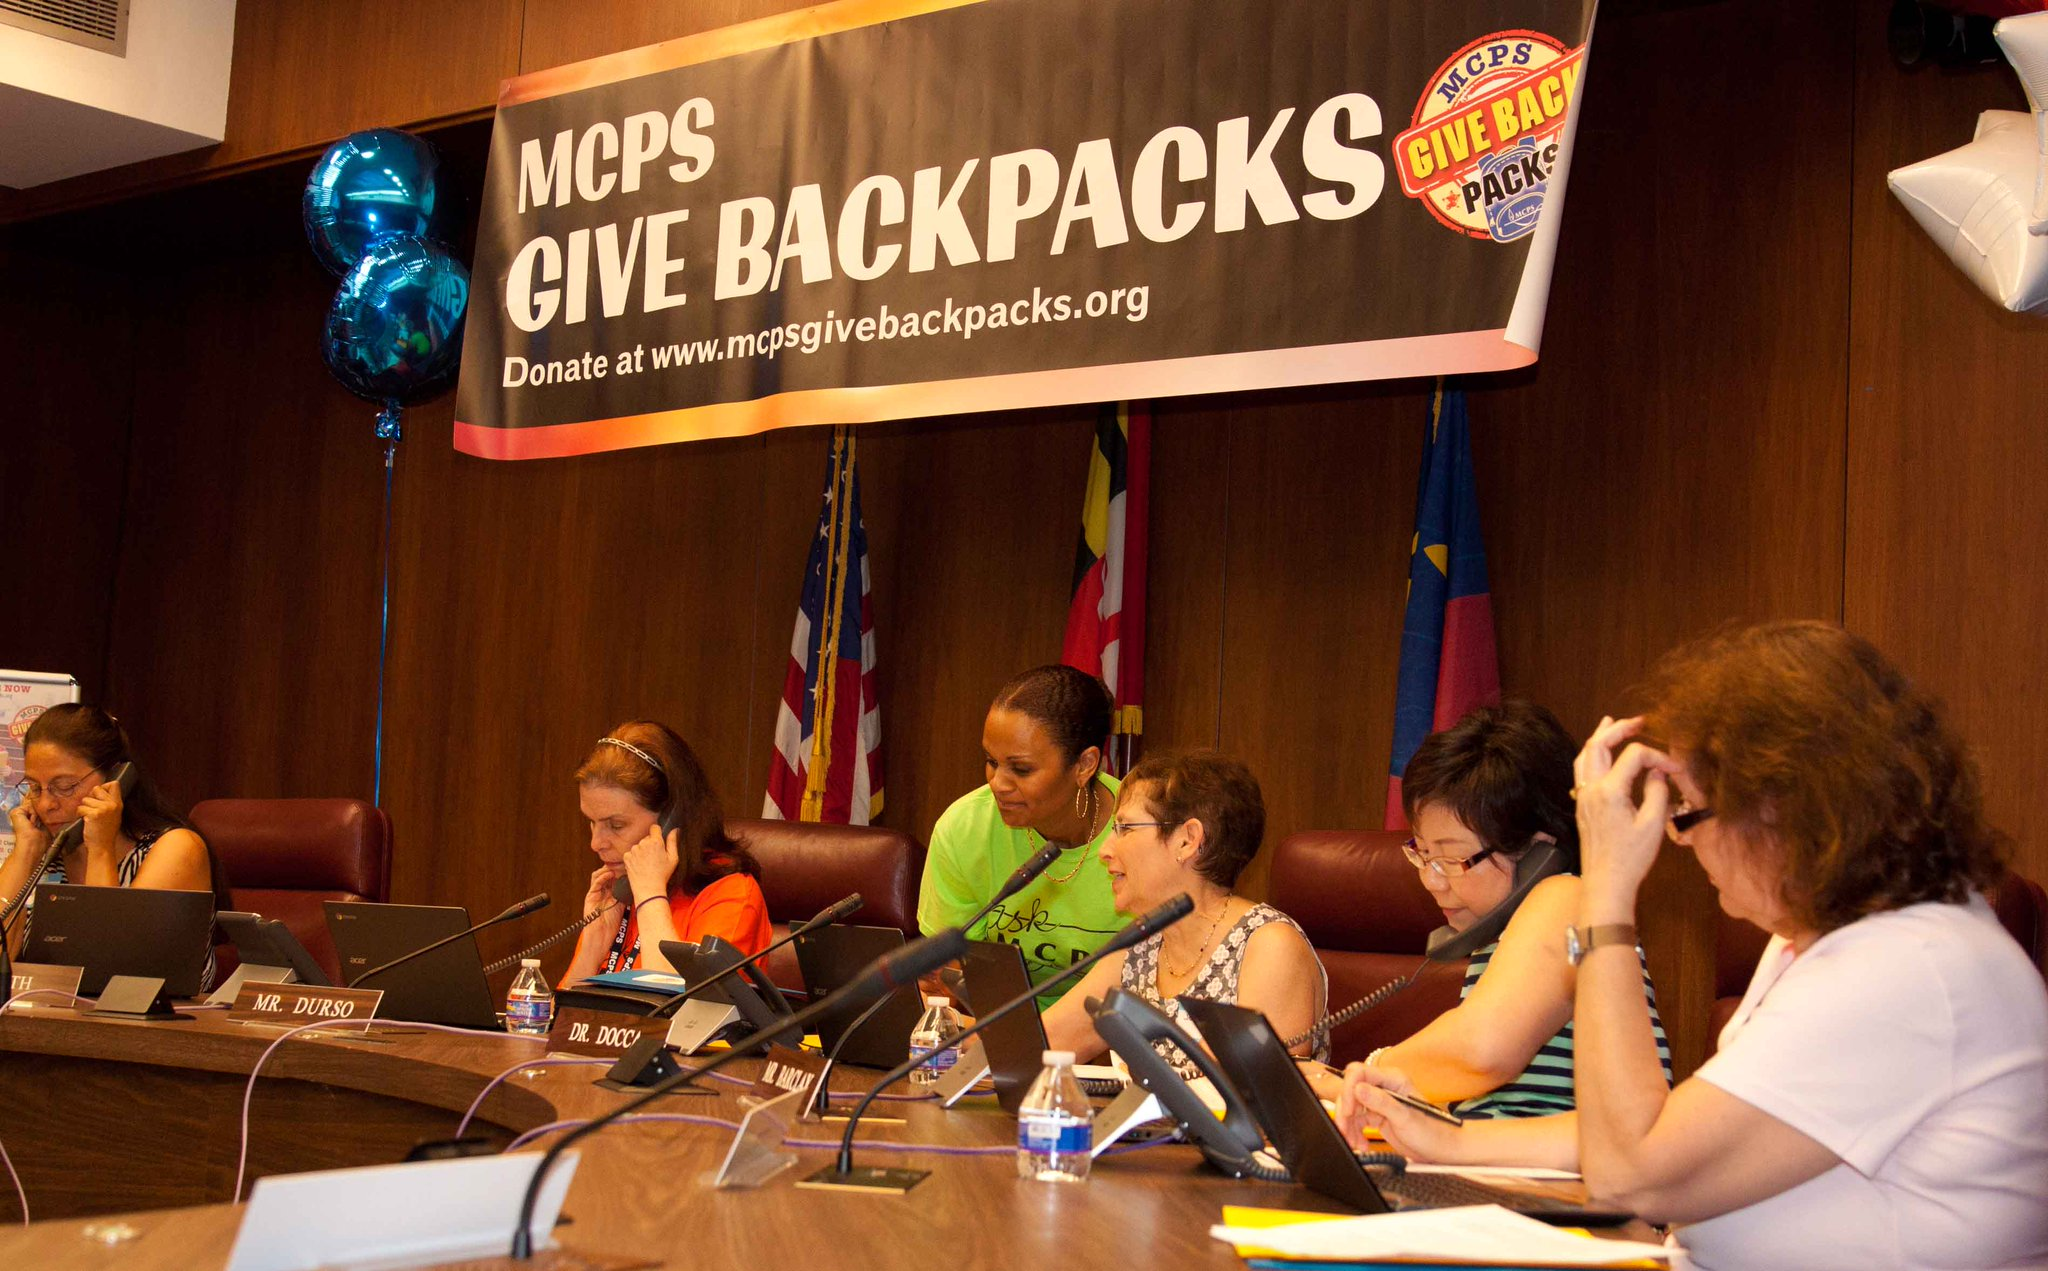 Volunteers are making/taking calls. MCPS Give Back Packs Phone-a-Thon 301-217-5323 Photos https://t.co/MuyX6N5gxz https://t.co/iXehqMTFlY